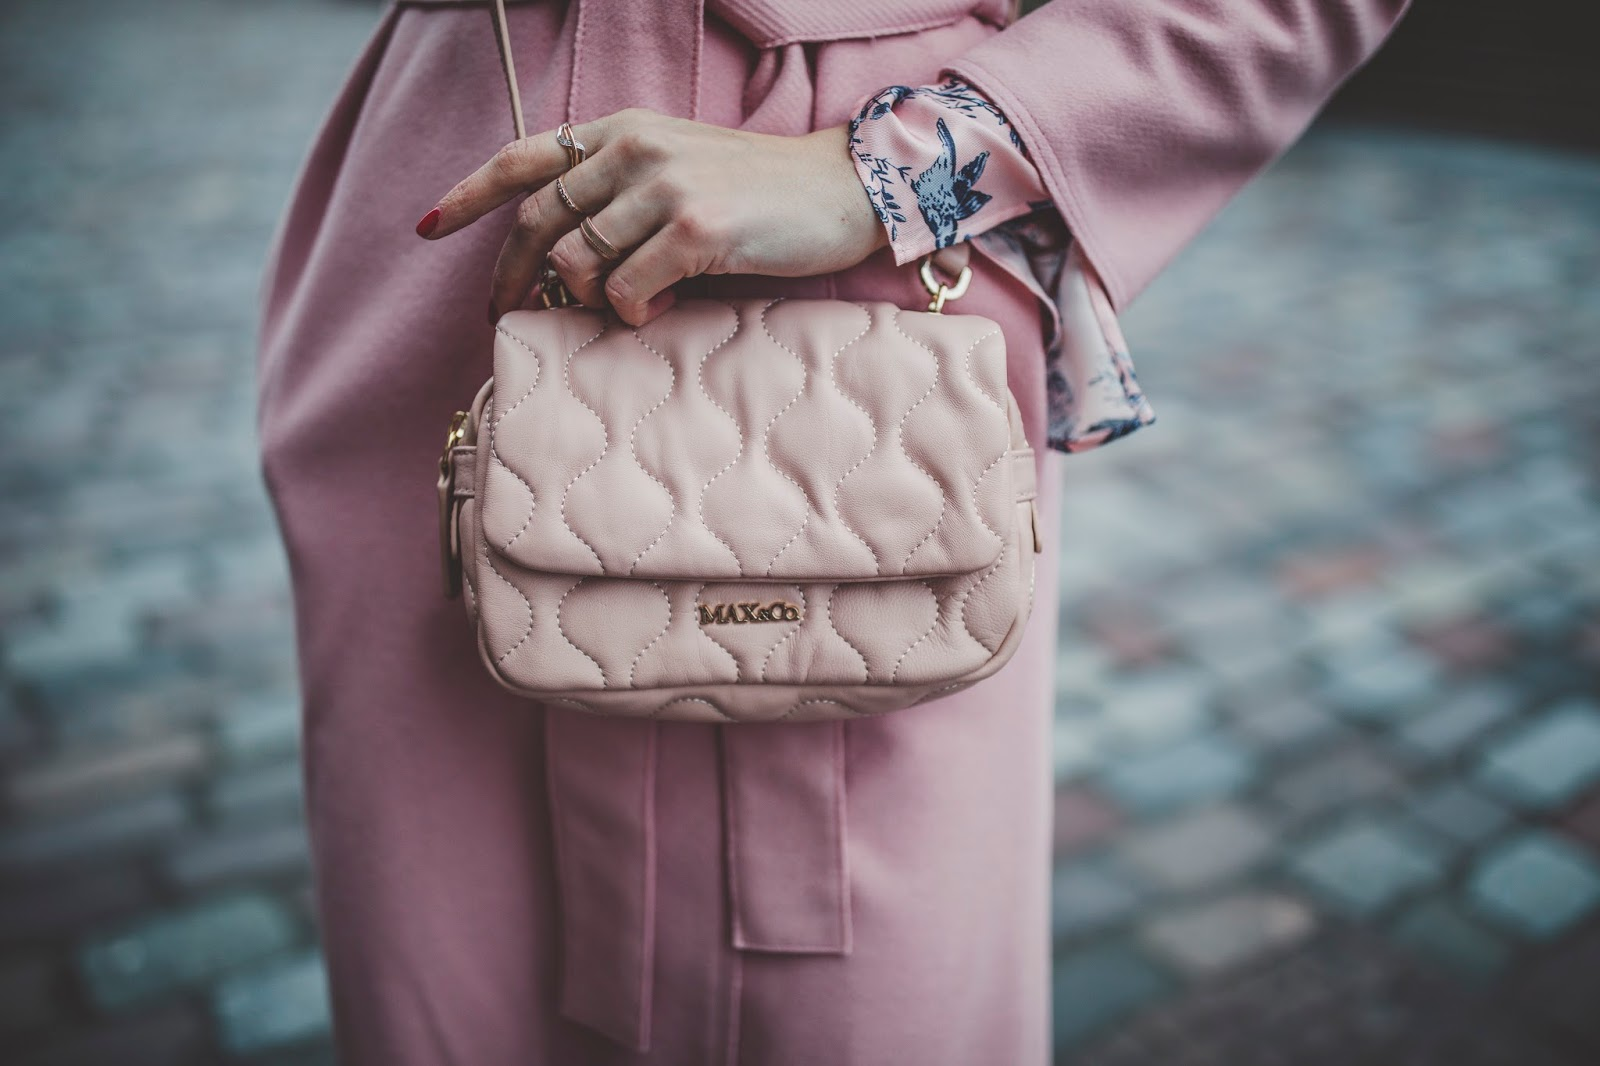 pink coat max co bag